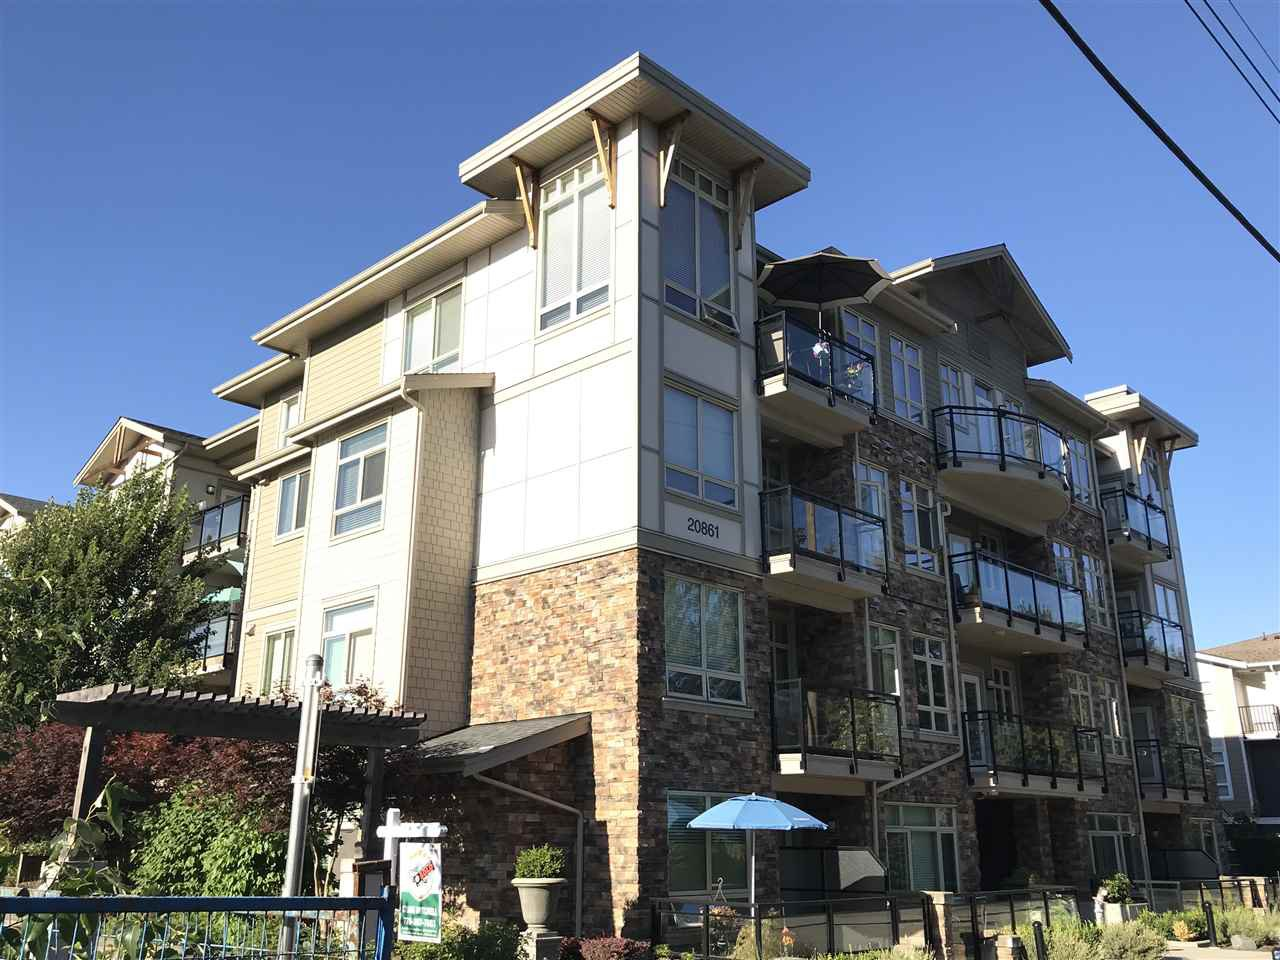 """Photo 14: Photos: 205 20861 83 Avenue in Langley: Willoughby Heights Condo for sale in """"Athenry Gate"""" : MLS®# R2290422"""